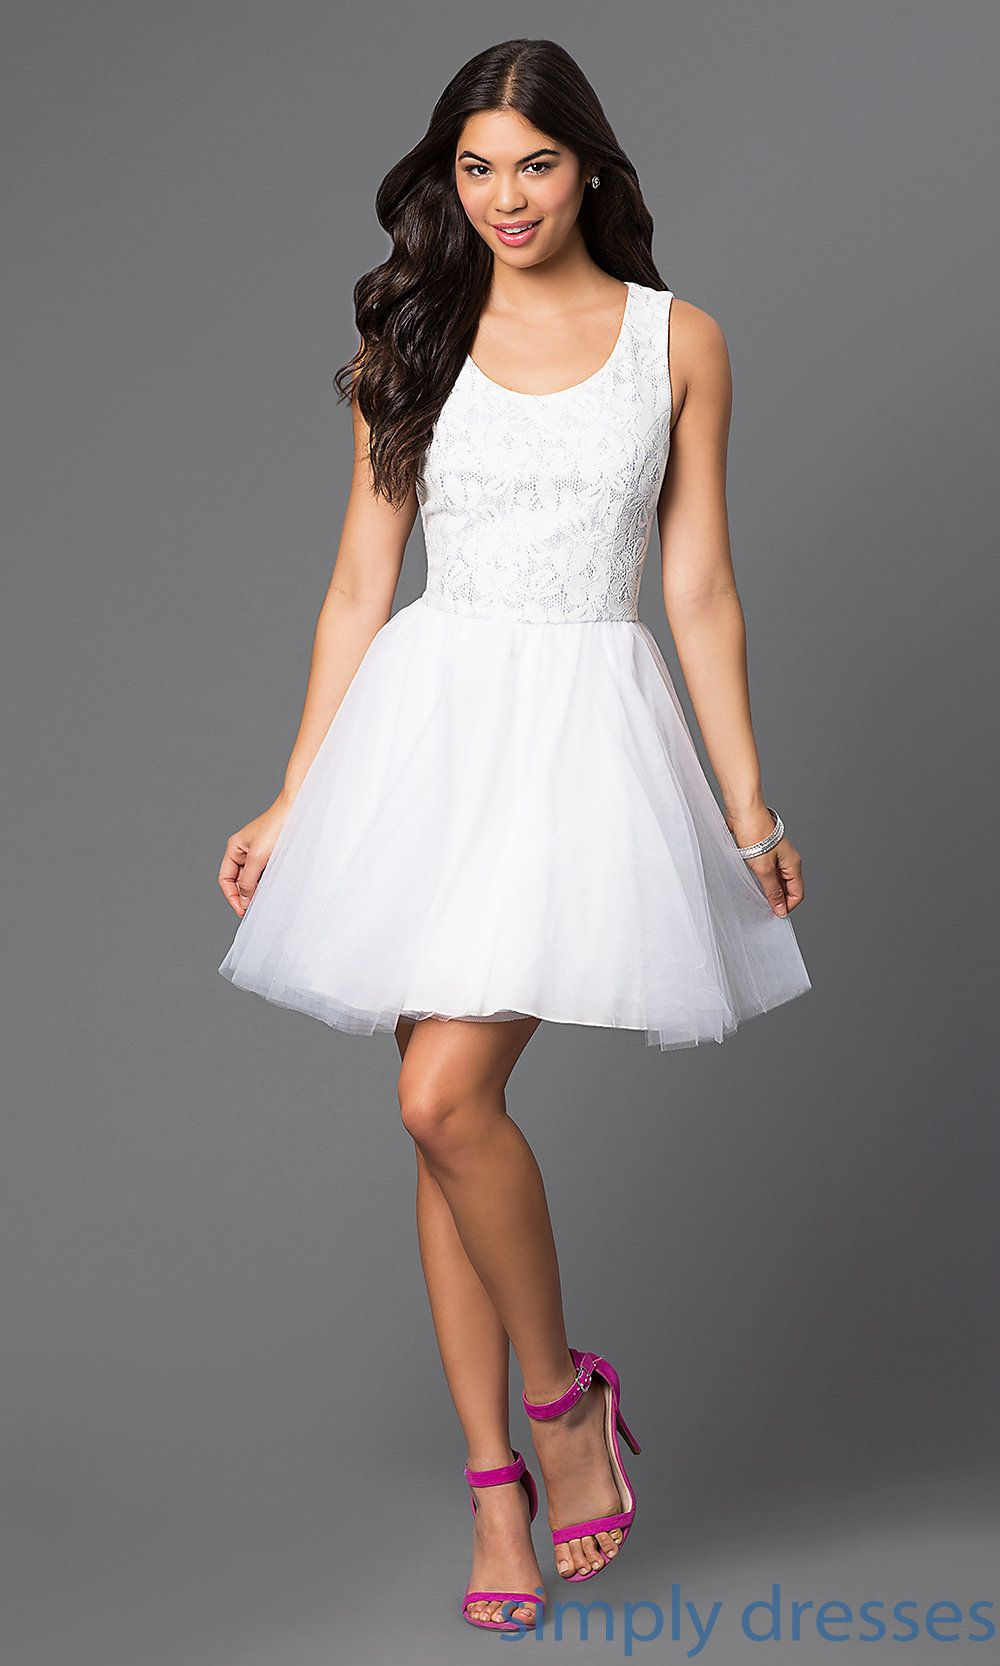 Shop short white graduation dresses with sleeveless silver lace tops at Simply  Dresses. Short little white dresses and backless dresses with bows. 8be12a008